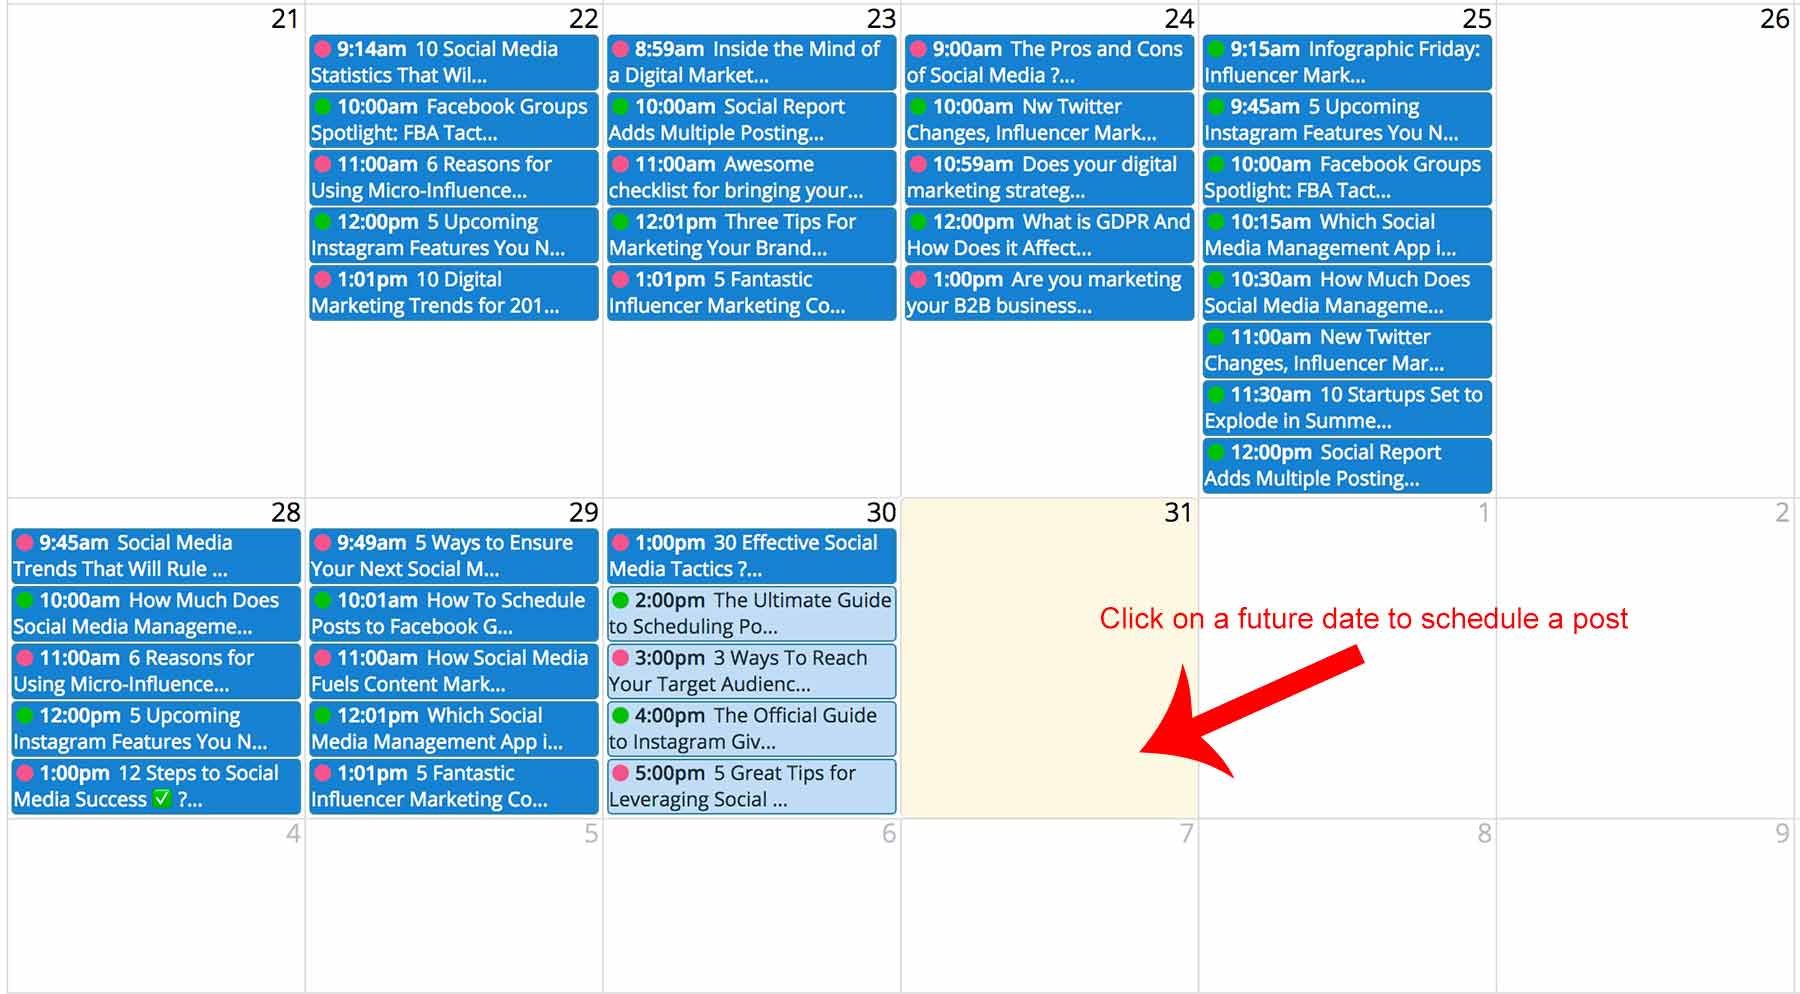 Schedule a post via calendar